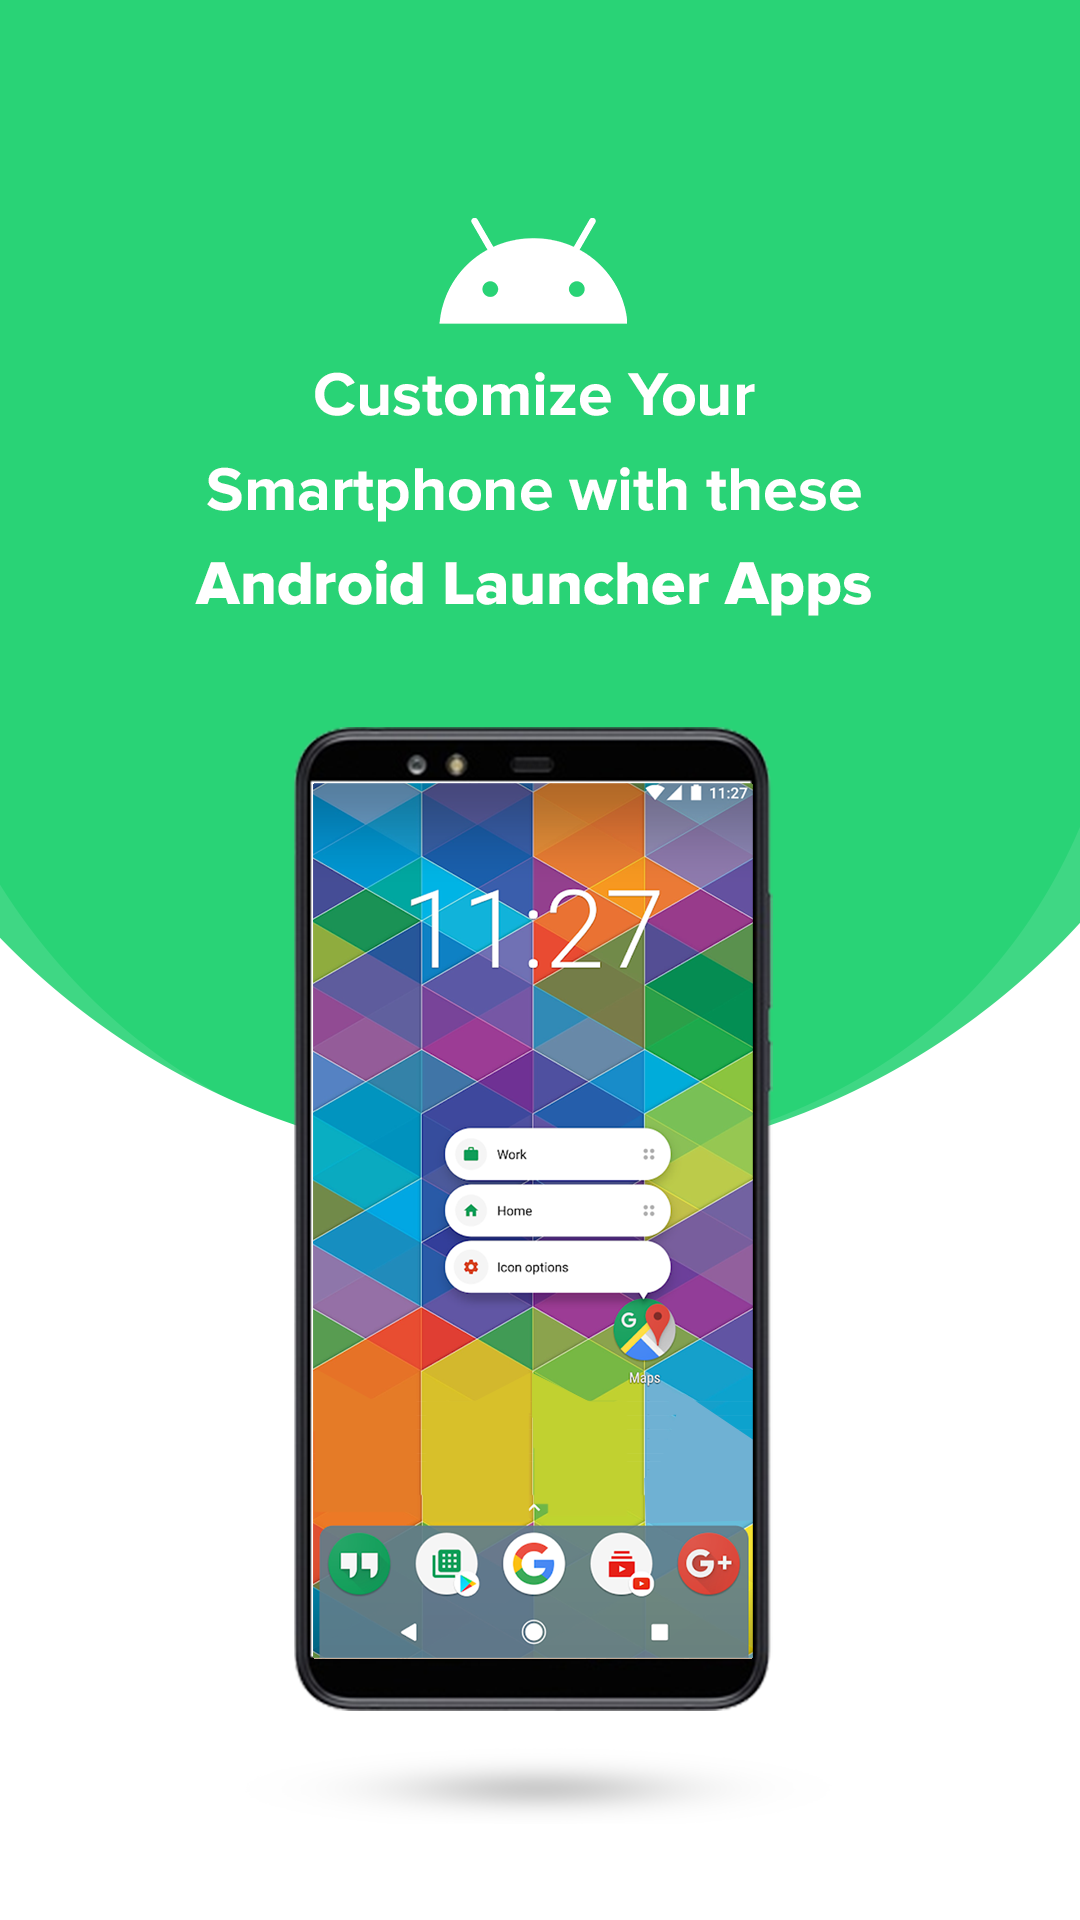 Best Android Launcher Apps To Try In 2020 in 2020 (With